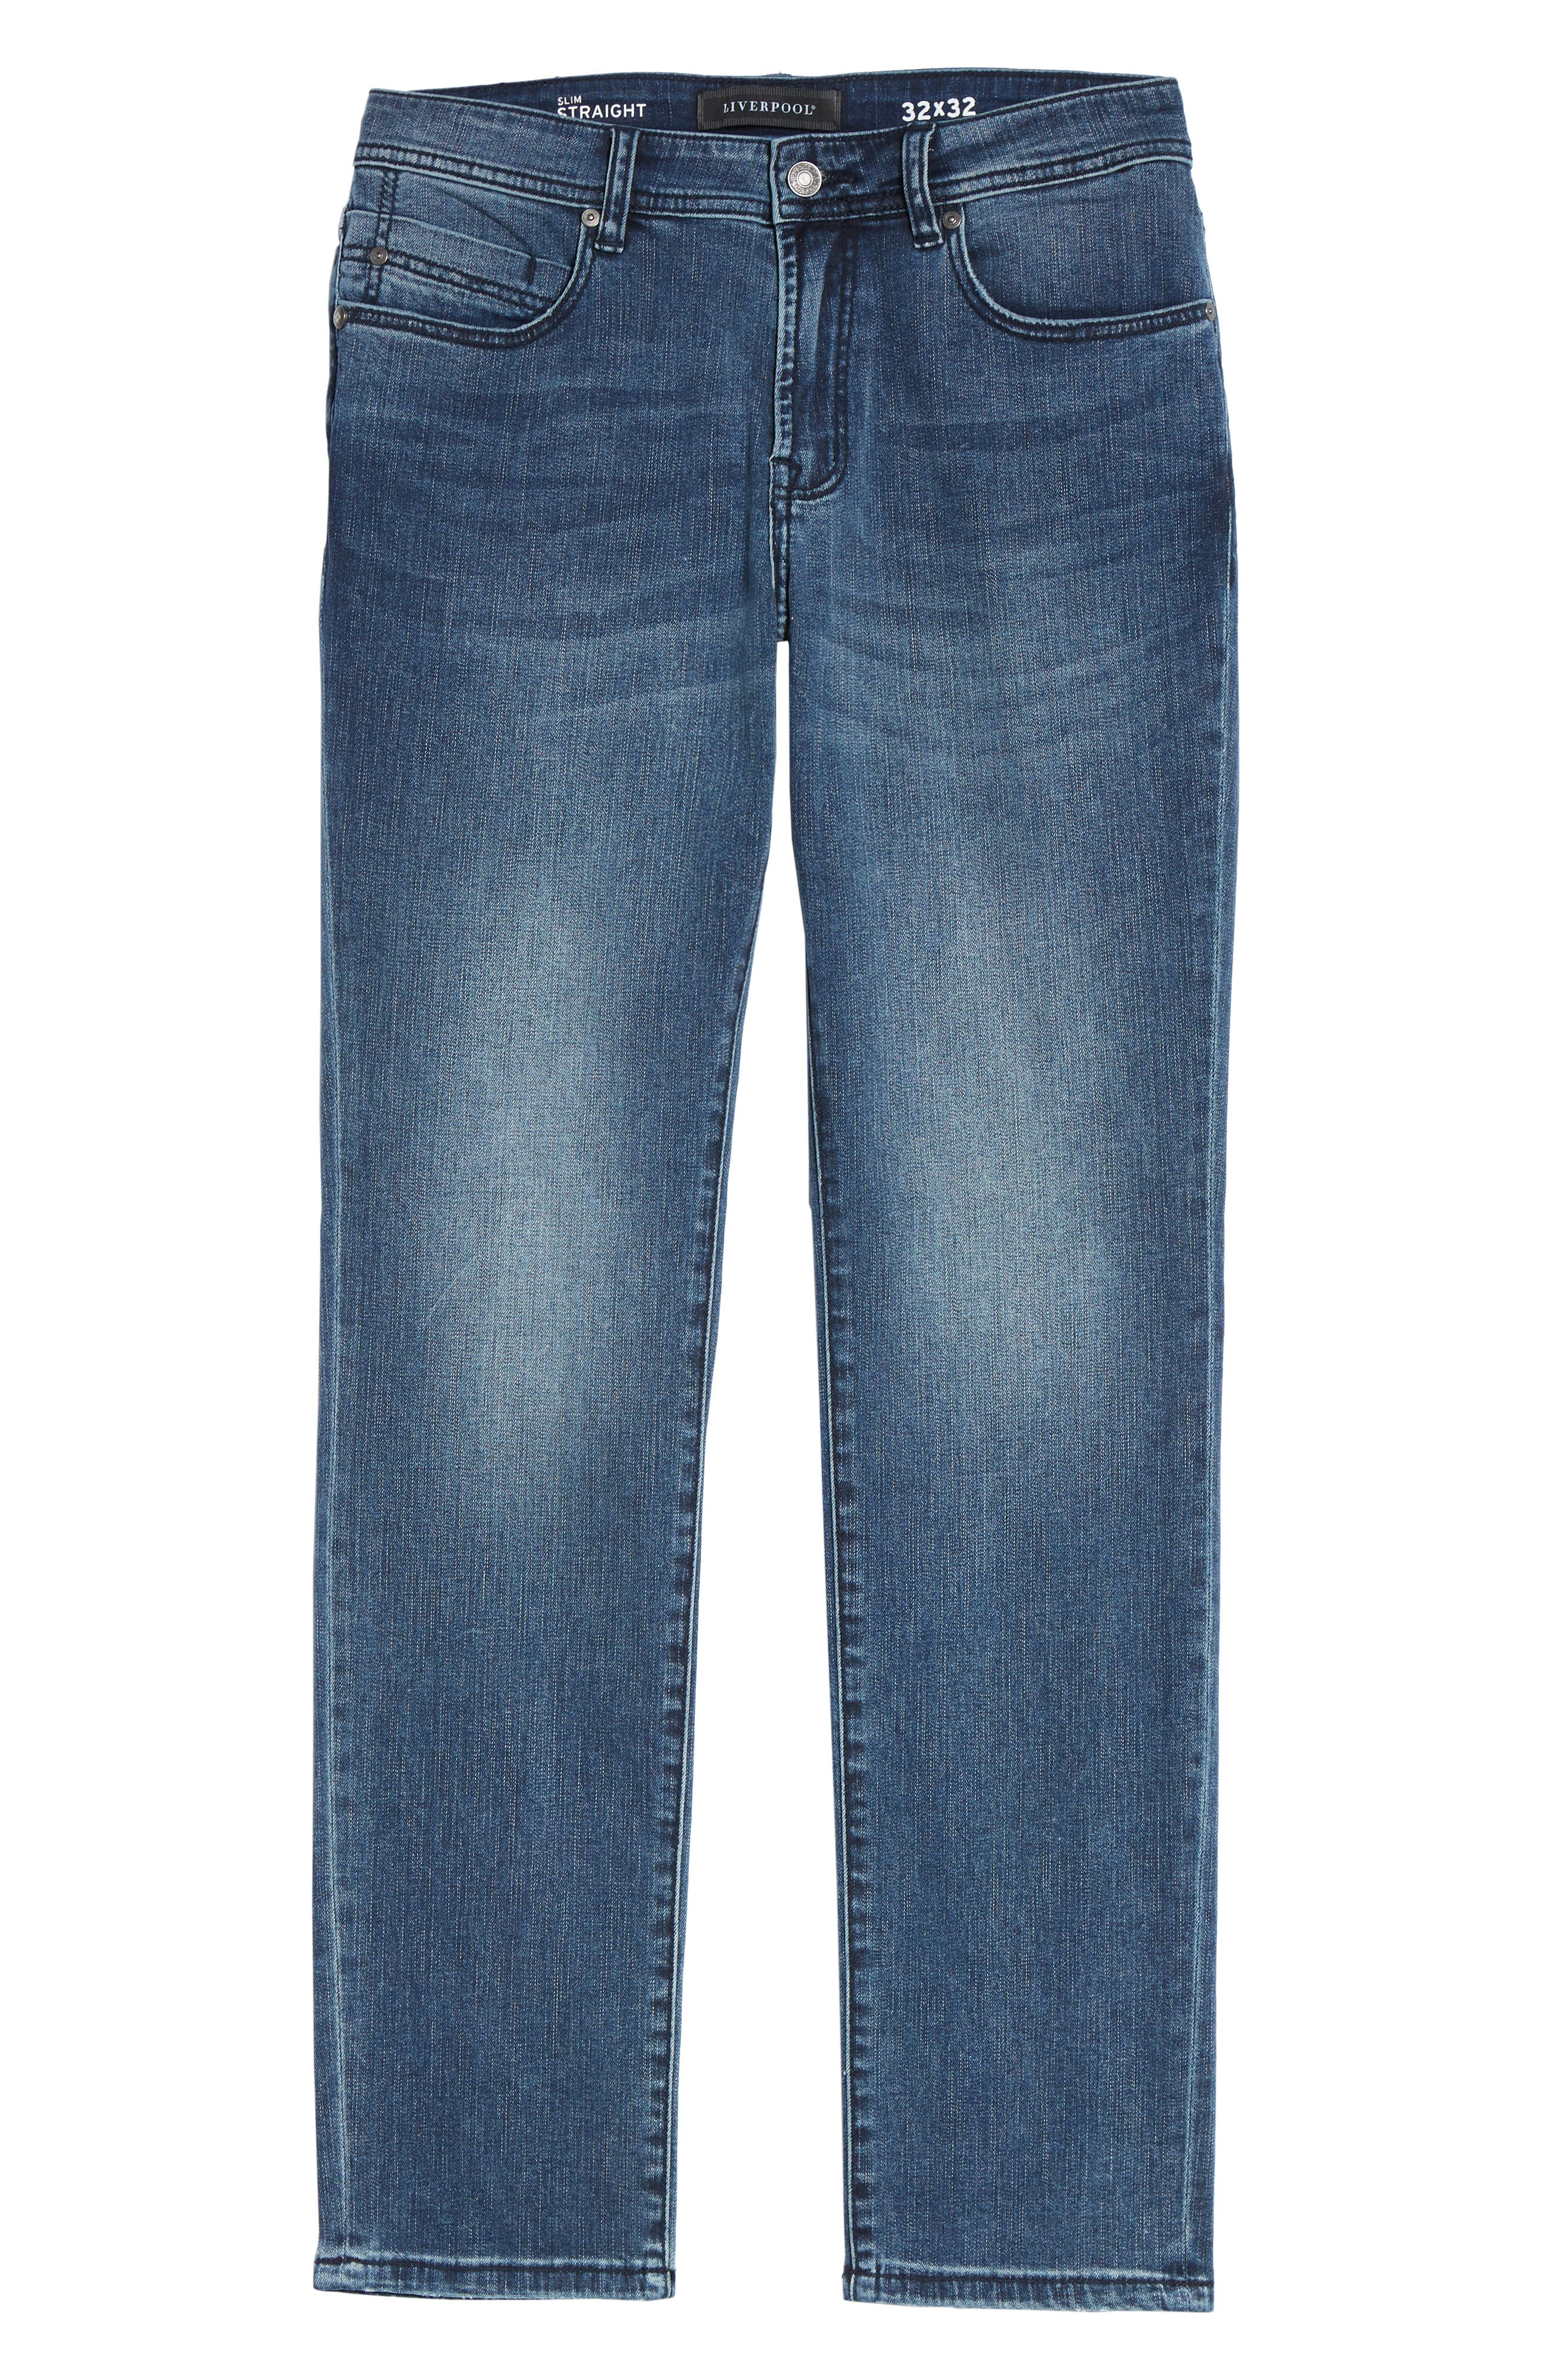 Jeans Co. Slim Straight Leg Jeans,                             Alternate thumbnail 6, color,                             403